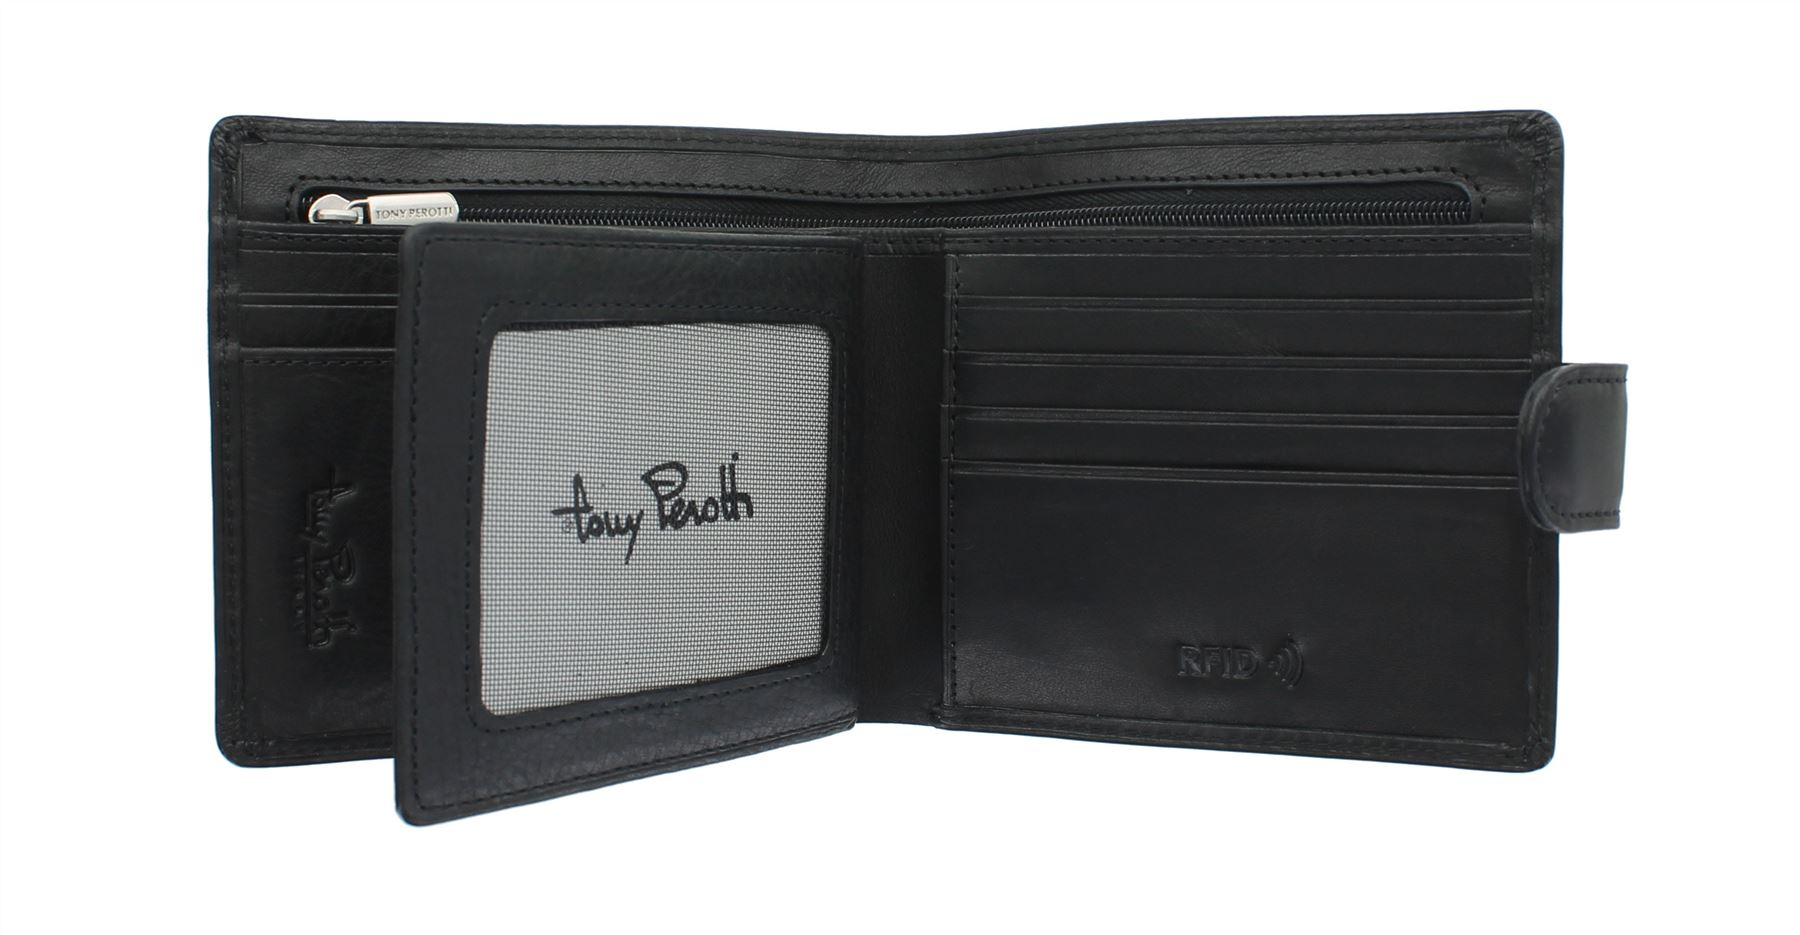 Tony Perotti Full Full Full Grain Leather Bi-Fold Wallet With RFID Protection 1001_1 | New Products